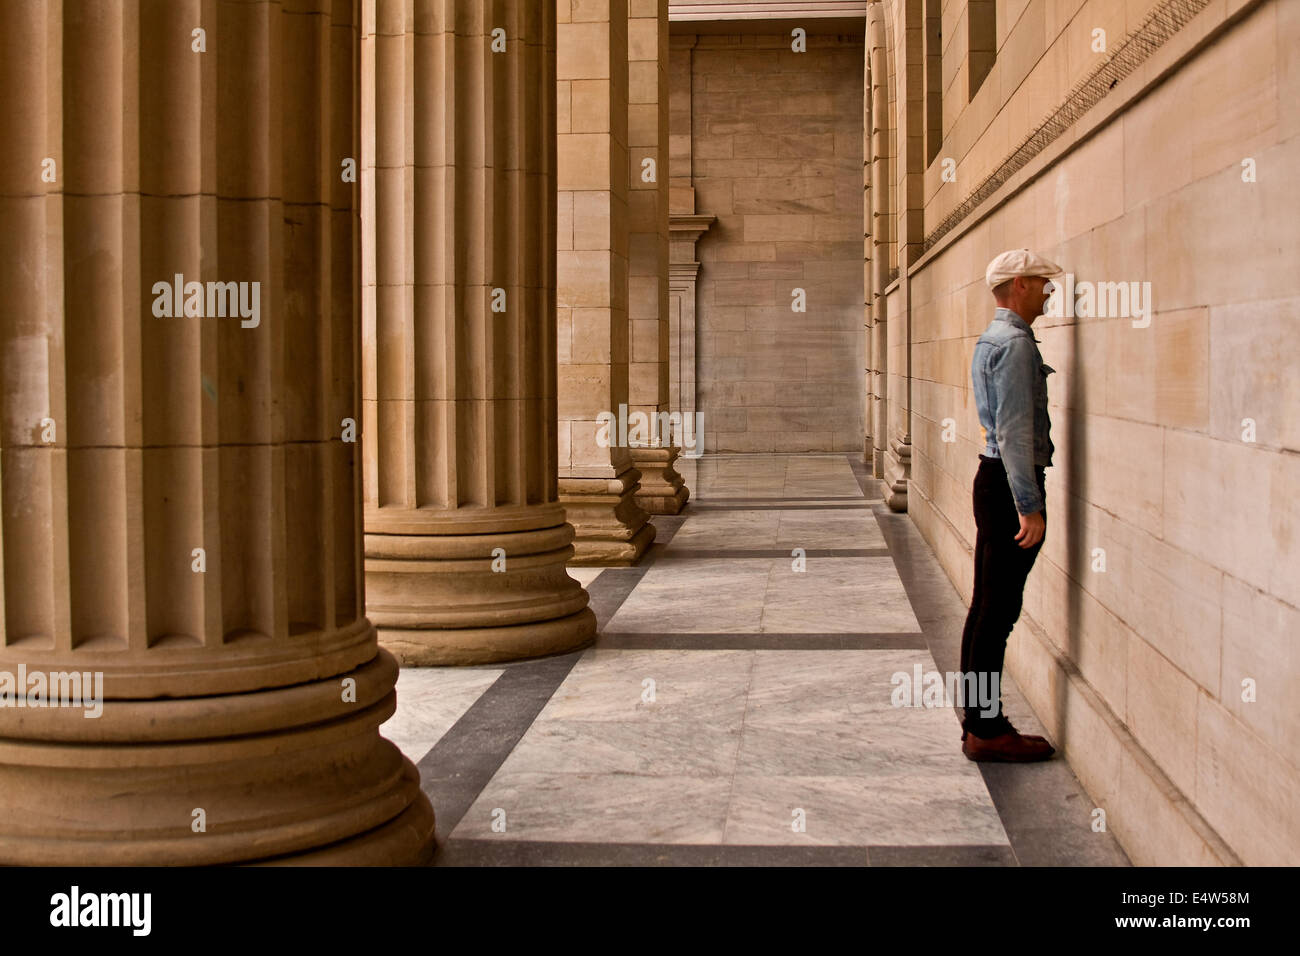 An Arts Entertainer Mr James Everything standing face to the wall at the Caird Hall exhibiting his new project in - Stock Image